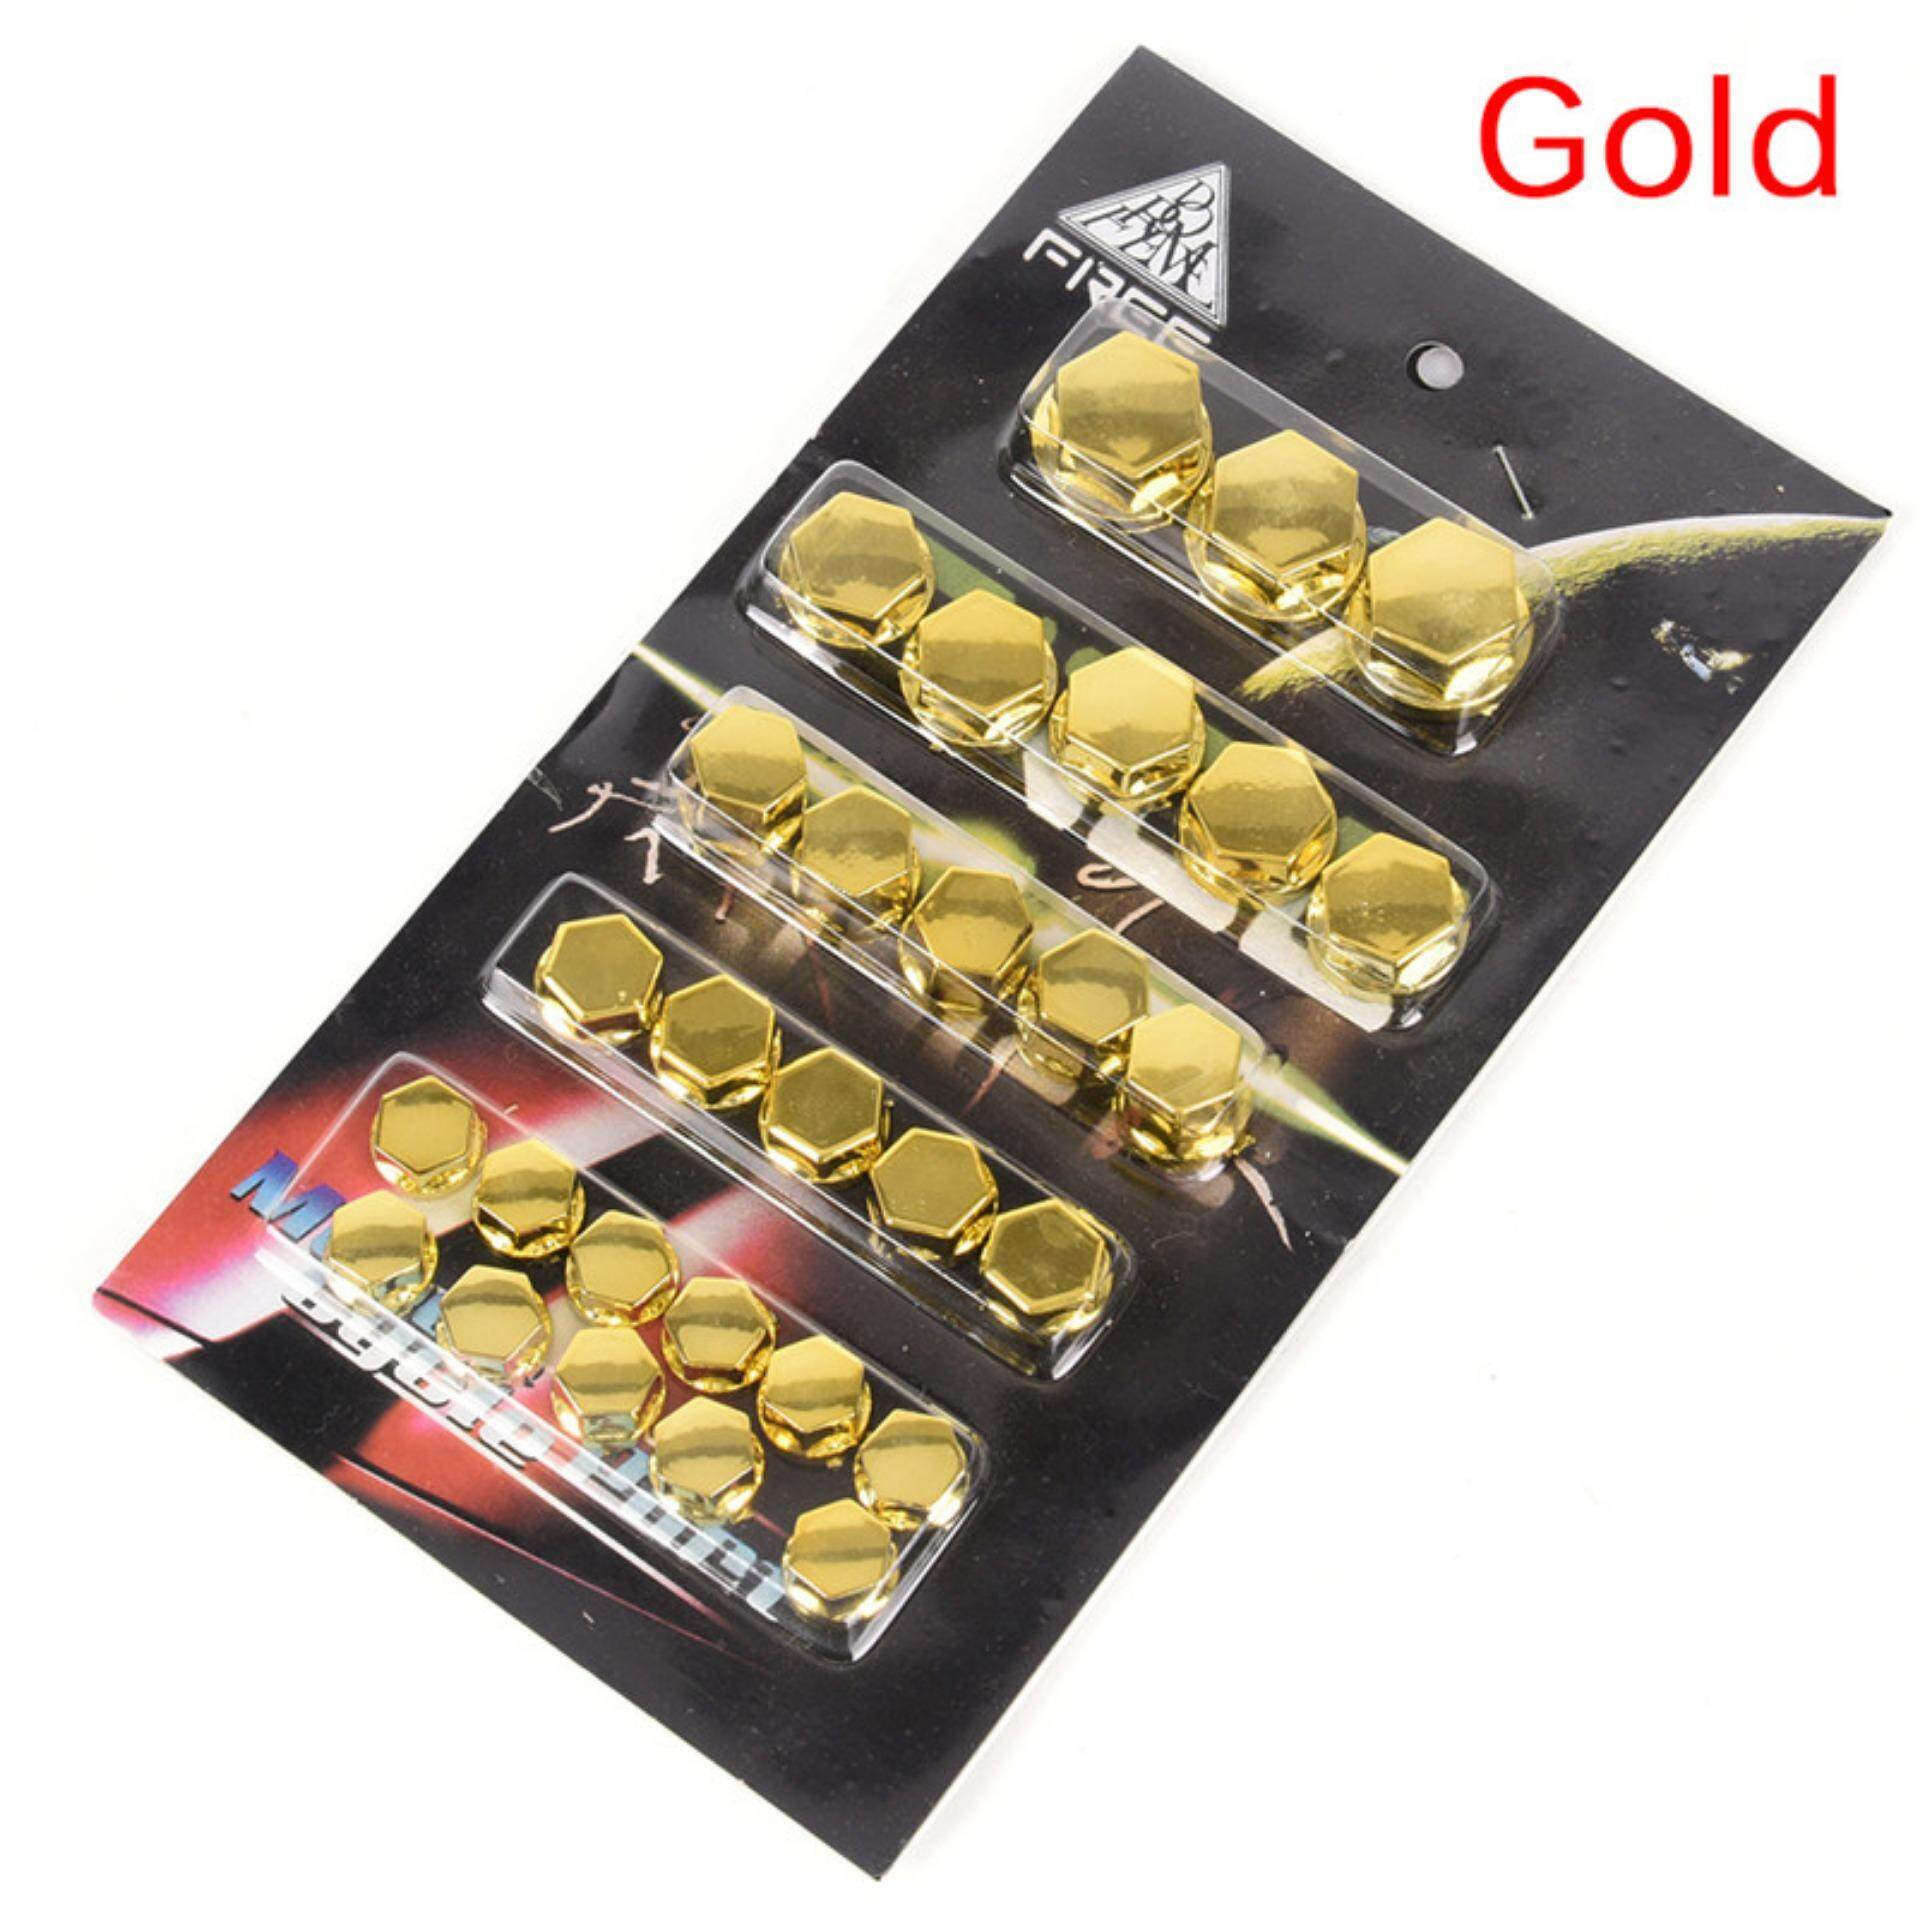 30pcs Motorcycle Screw Nut Bolt Cap Cover Decoration Centro Motorbike Ornament Fashion Gold By Up Top.